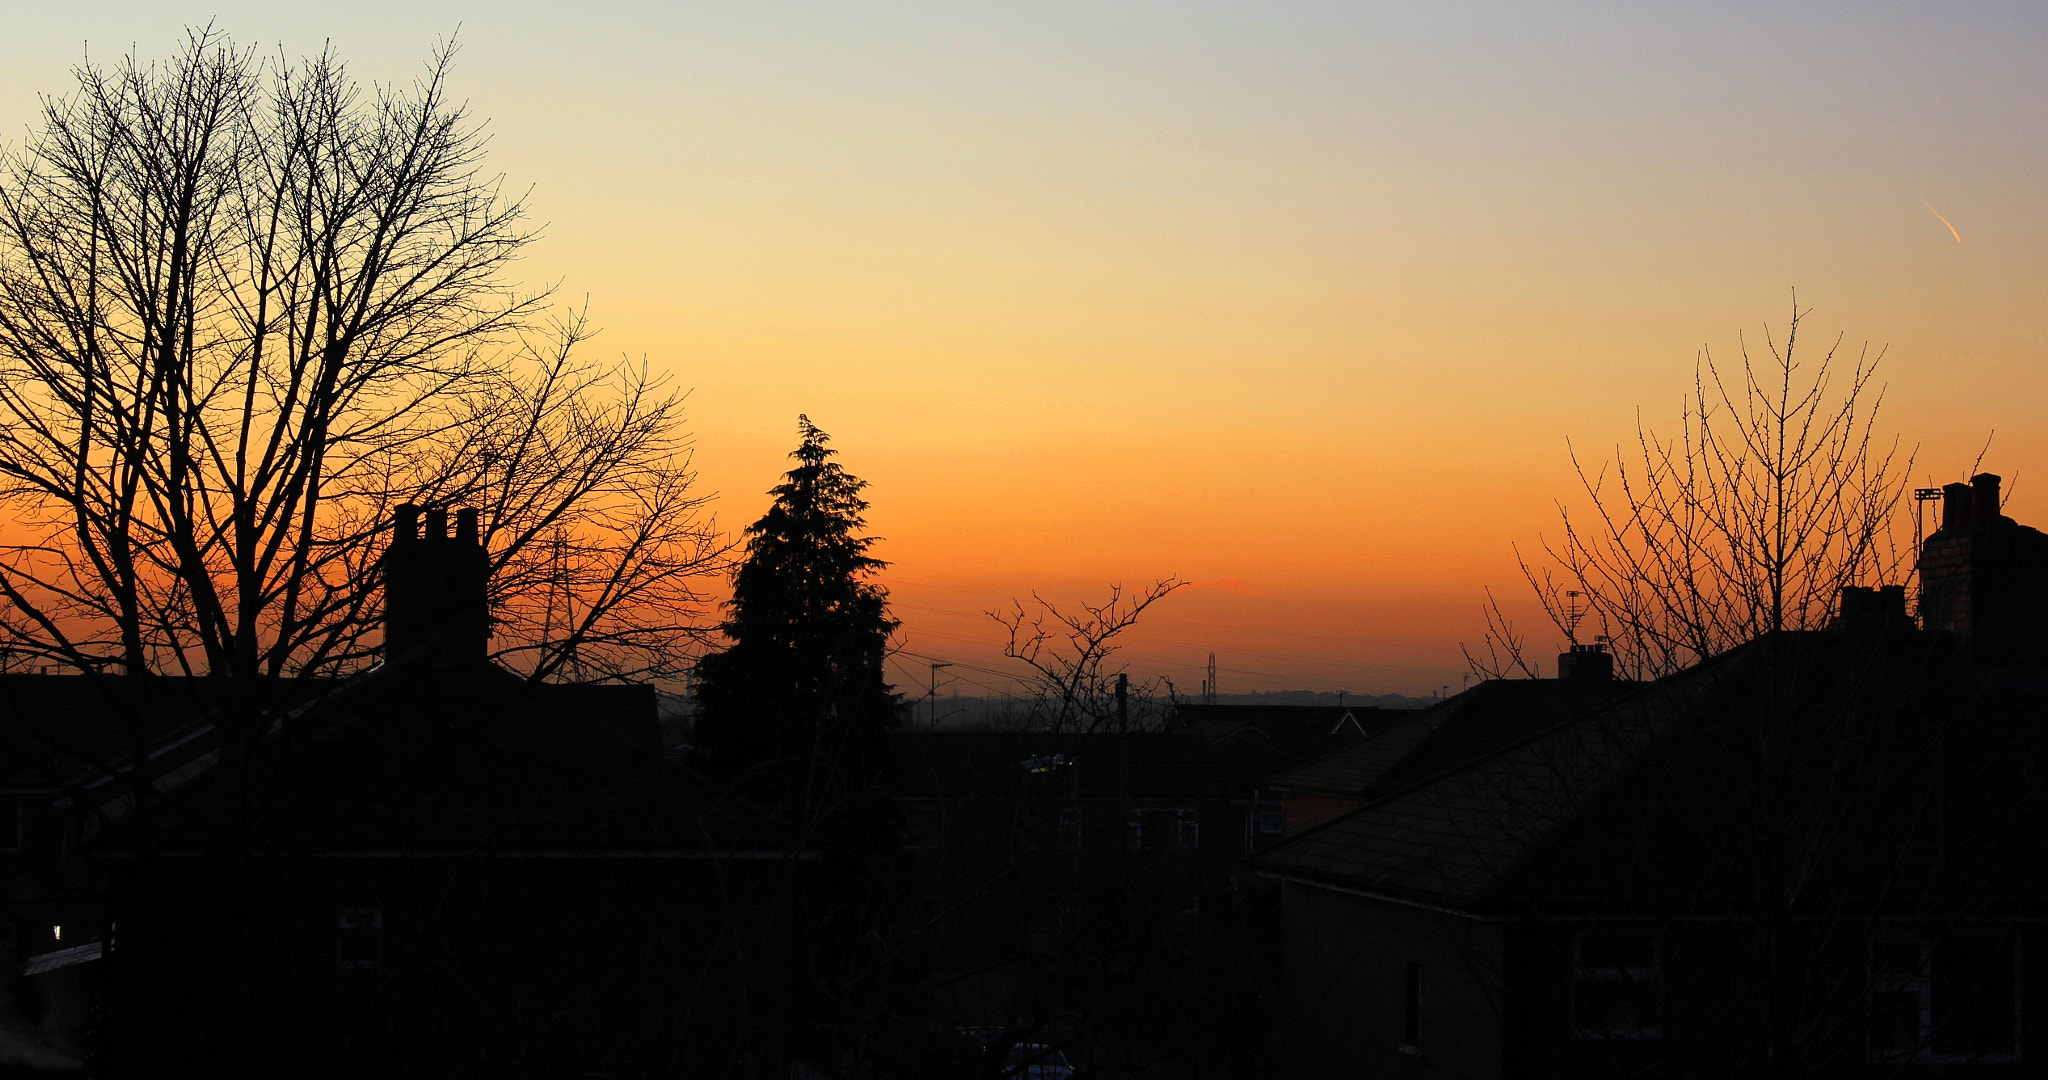 Photograph Friday 13th Sunset 2012  by Deborah Anderson-Marland on 500px